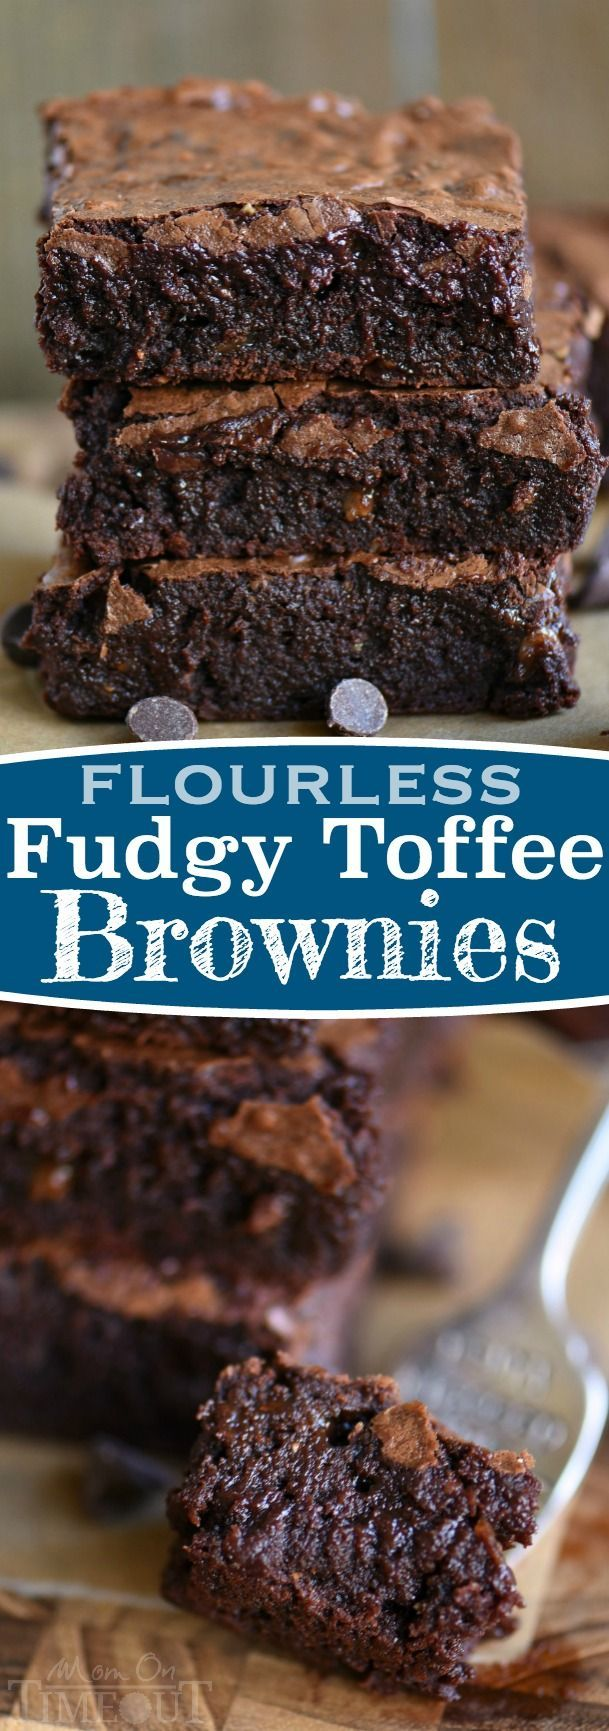 The BEST brownies I've ever had and they just happen to be naturally gluten free! Made without any flour, these Fudgy Toffee Flourless Brownies are naturally gluten free and are going to blow you away! So rich, so fudgy, and absolutely BURSTING with rich, chocolate flavor! A secret ingredient is the key!